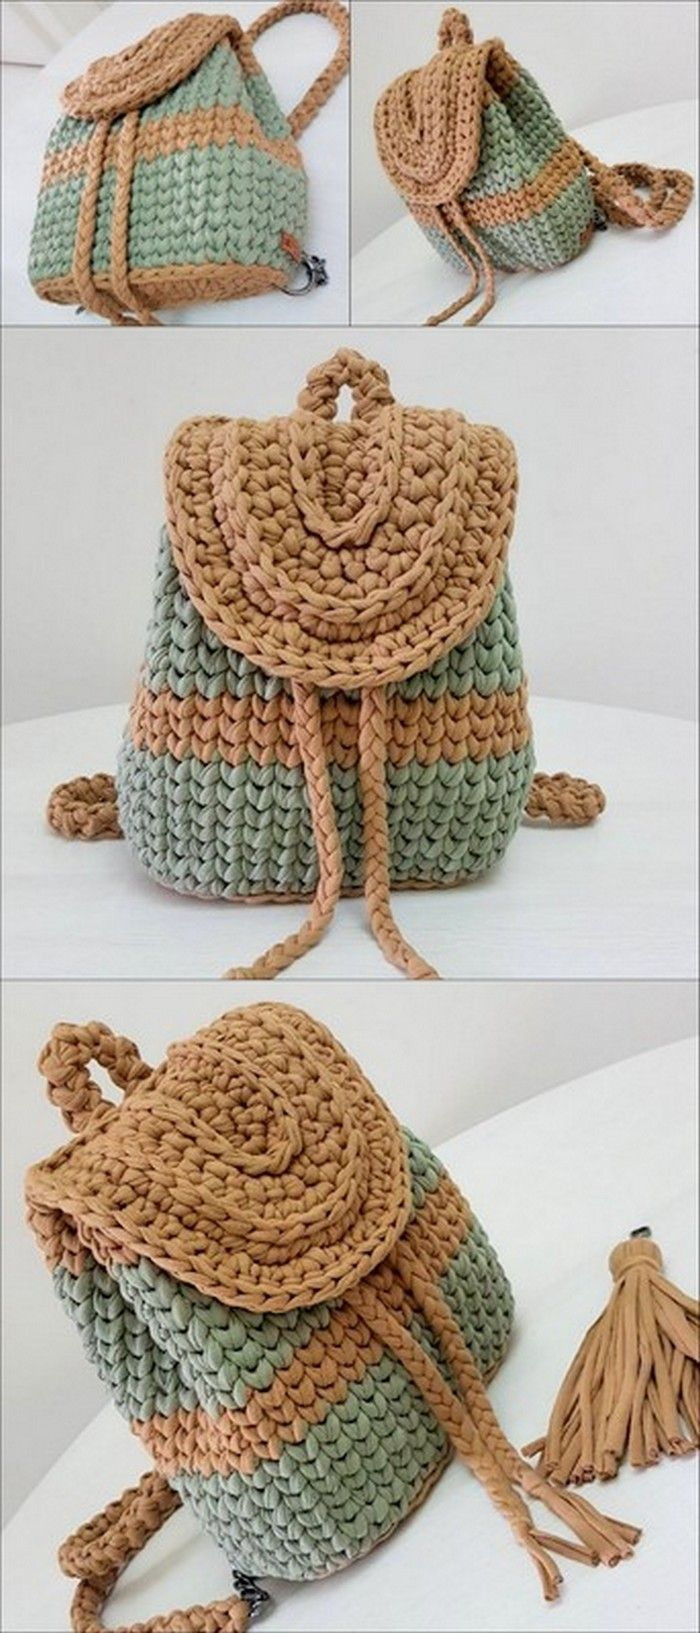 amazing crochet pattern for bag amazing crochet pattern for bagHäkeln amazing crochet pattern for bag bags purses crafts stitches patterns stitch crochet crafts